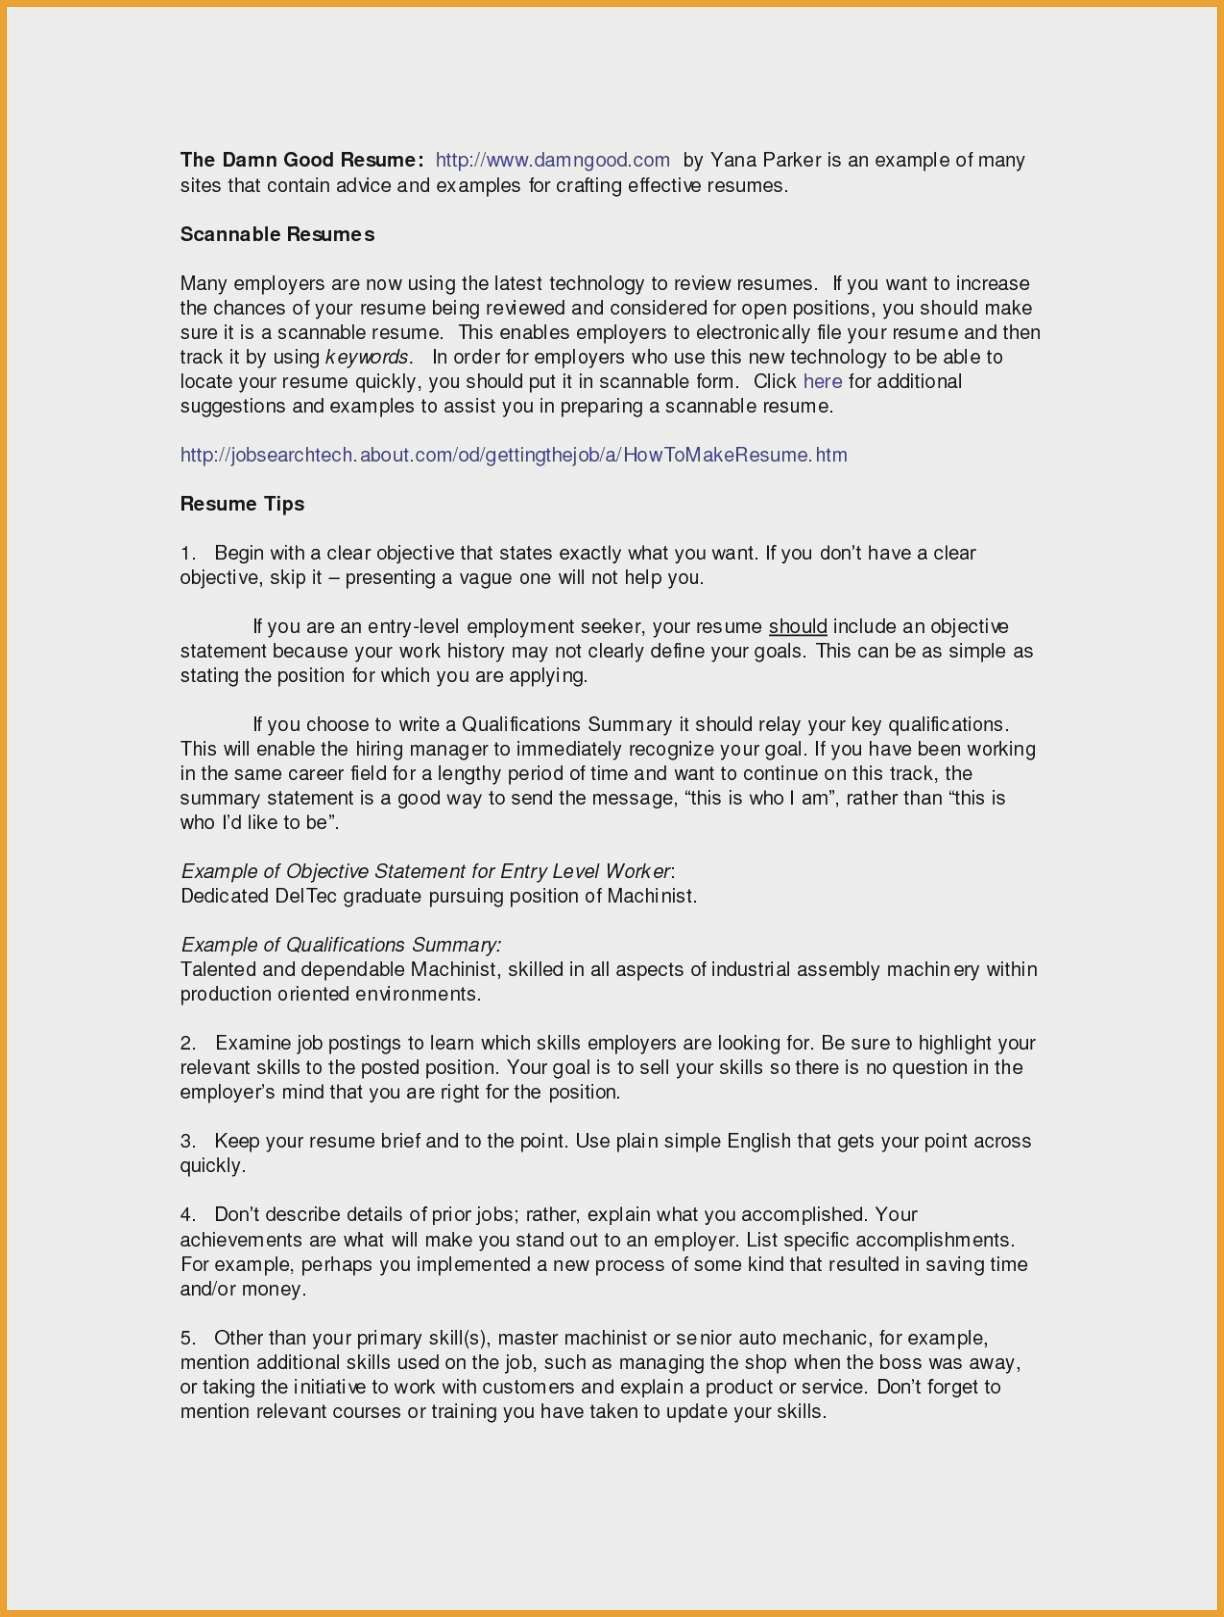 Resume Templates that Stand Out - Objective Resume Templates Artsy Head Quely